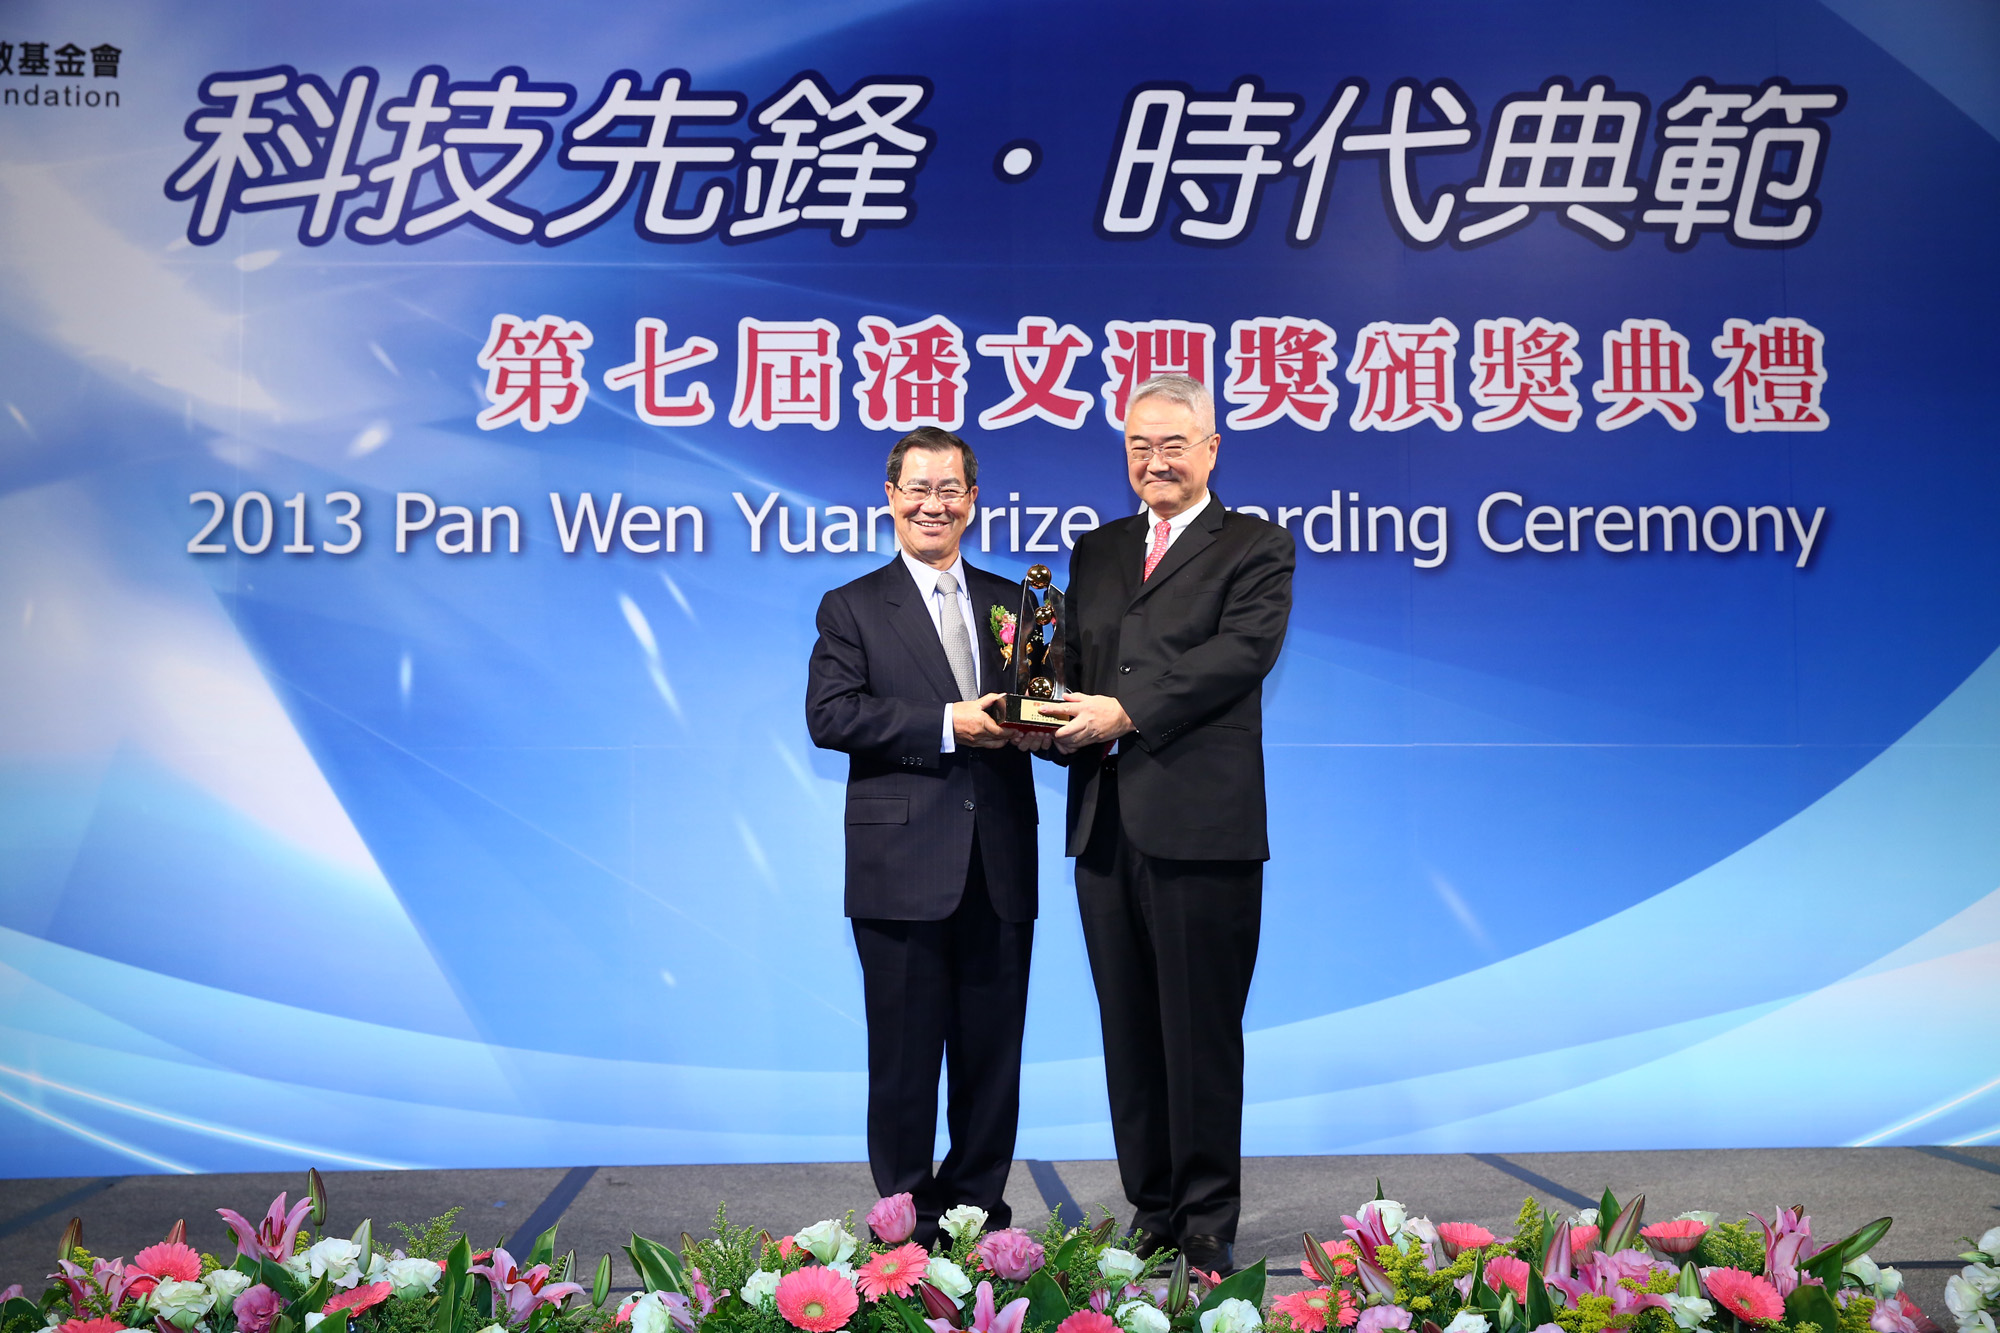 pan-award-wang